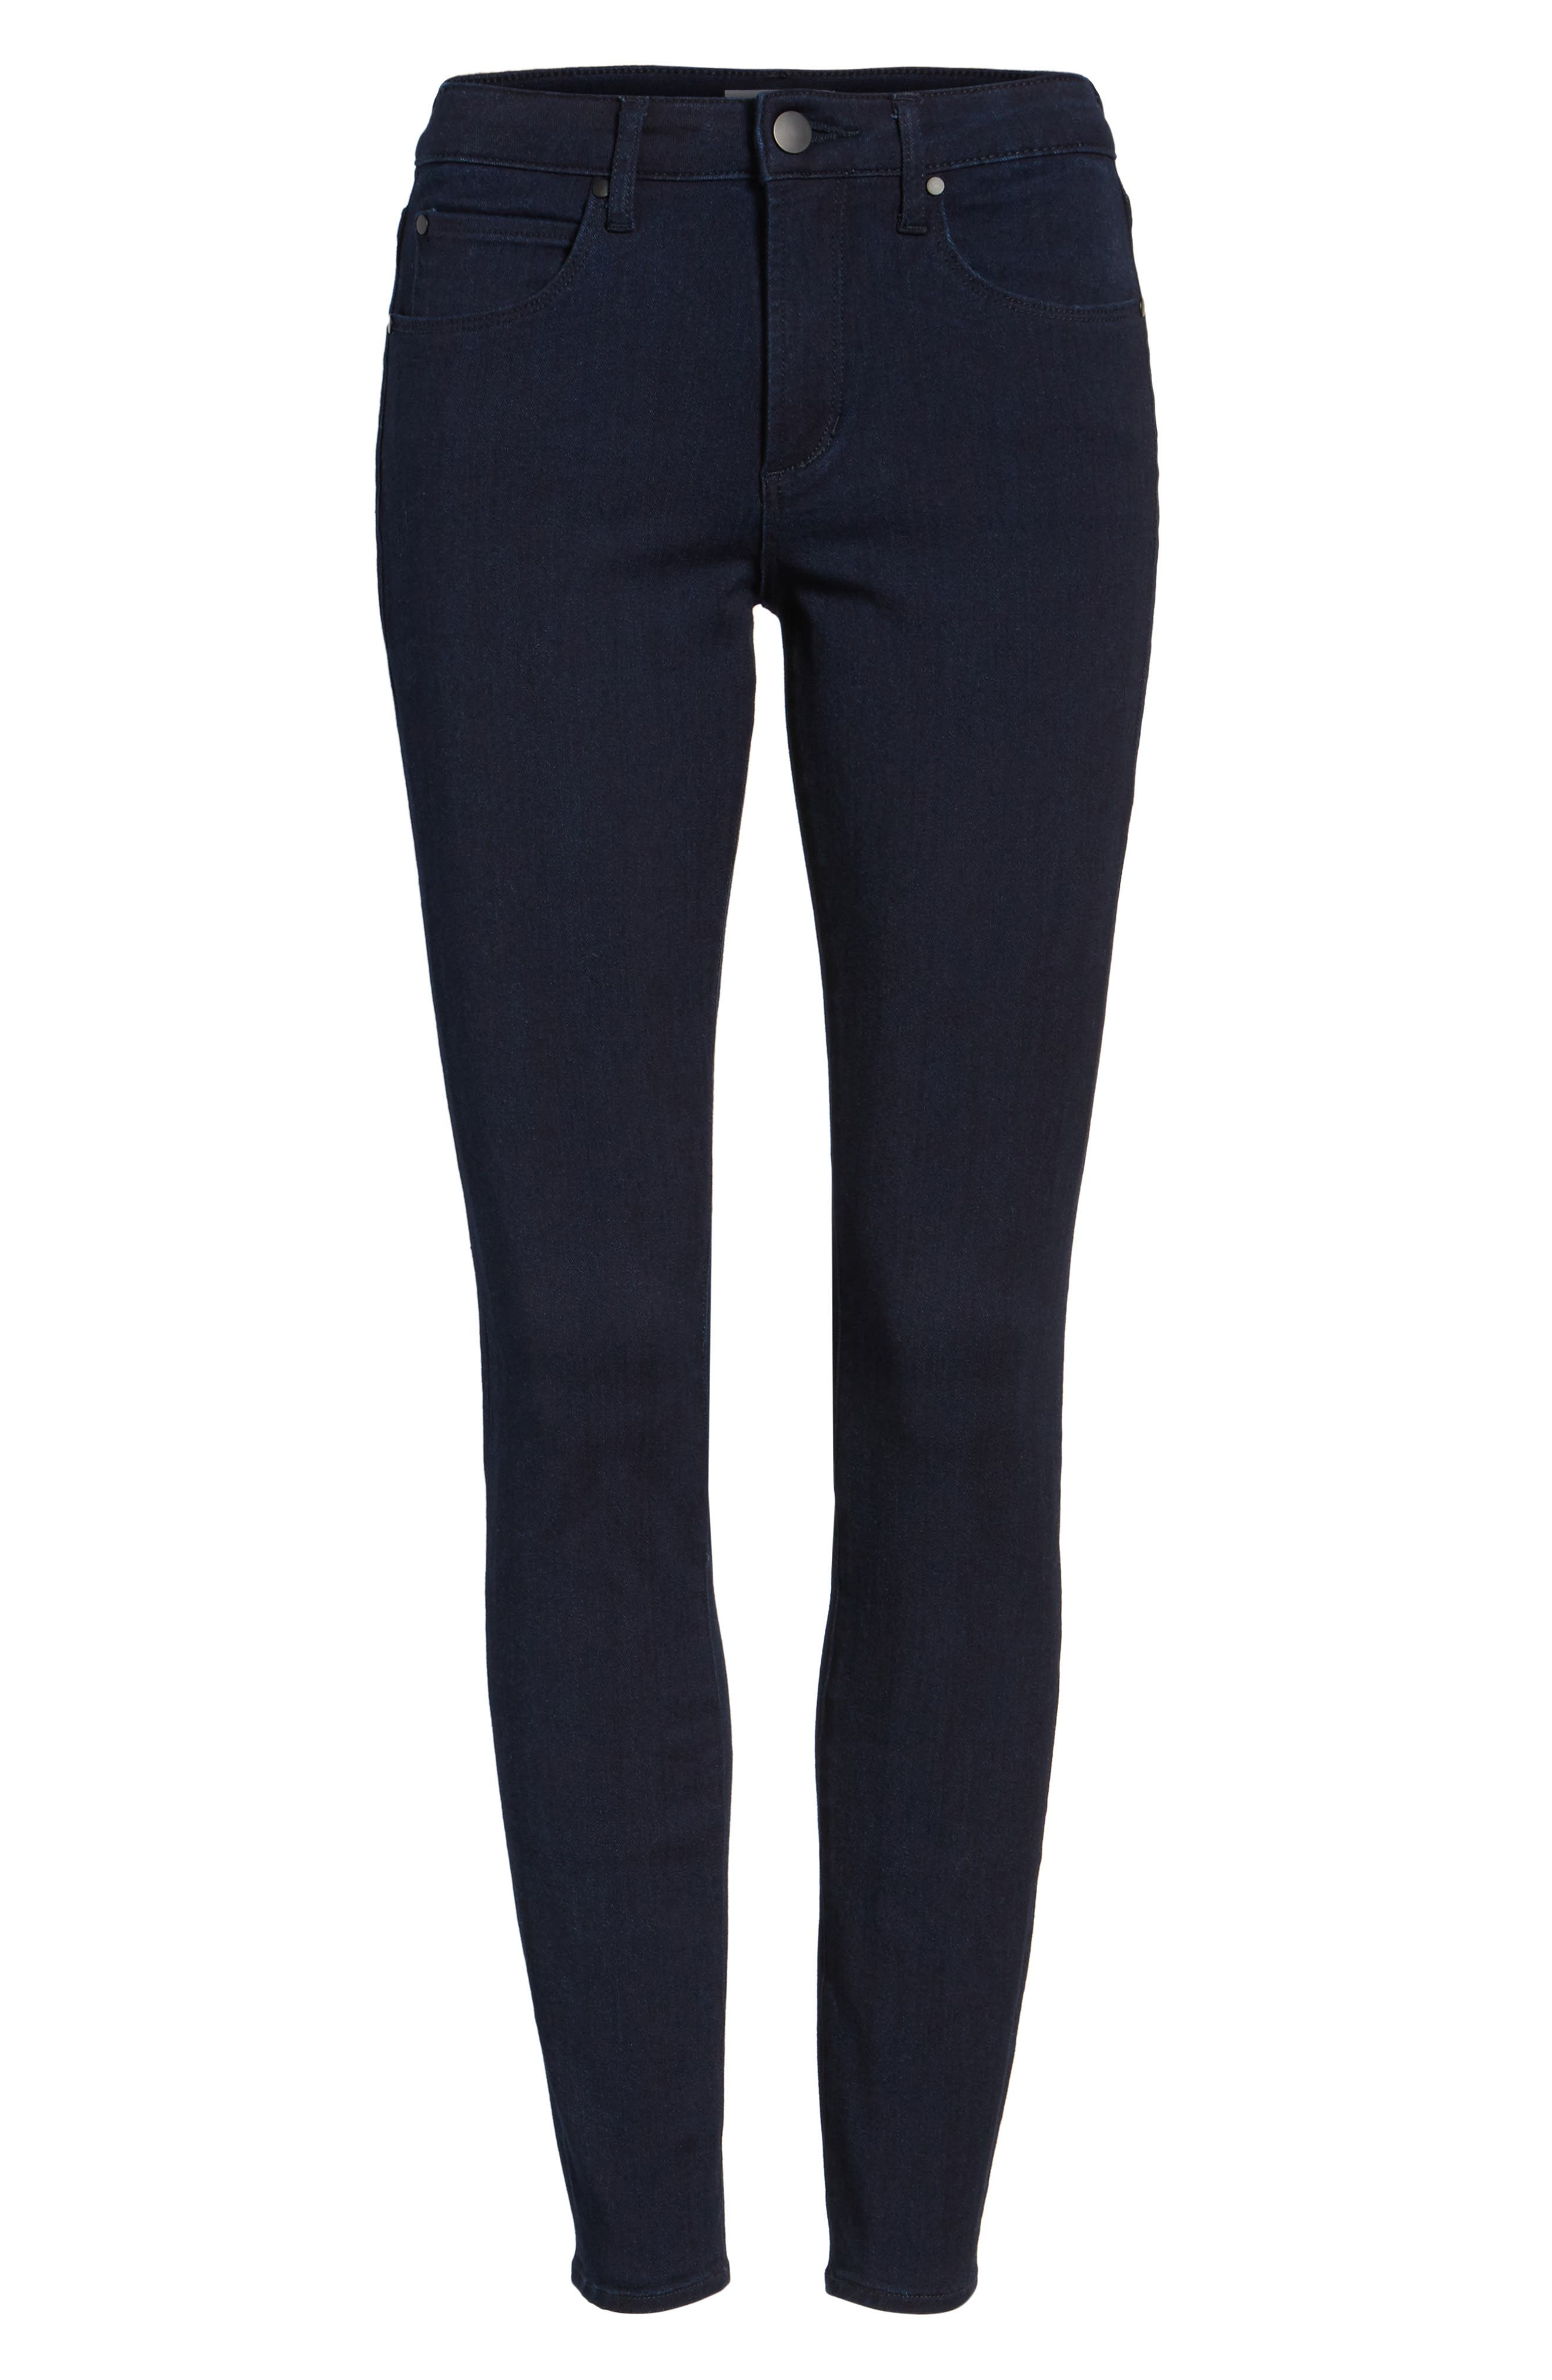 Mid Rise Skinny Jeans,                             Alternate thumbnail 6, color,                             401